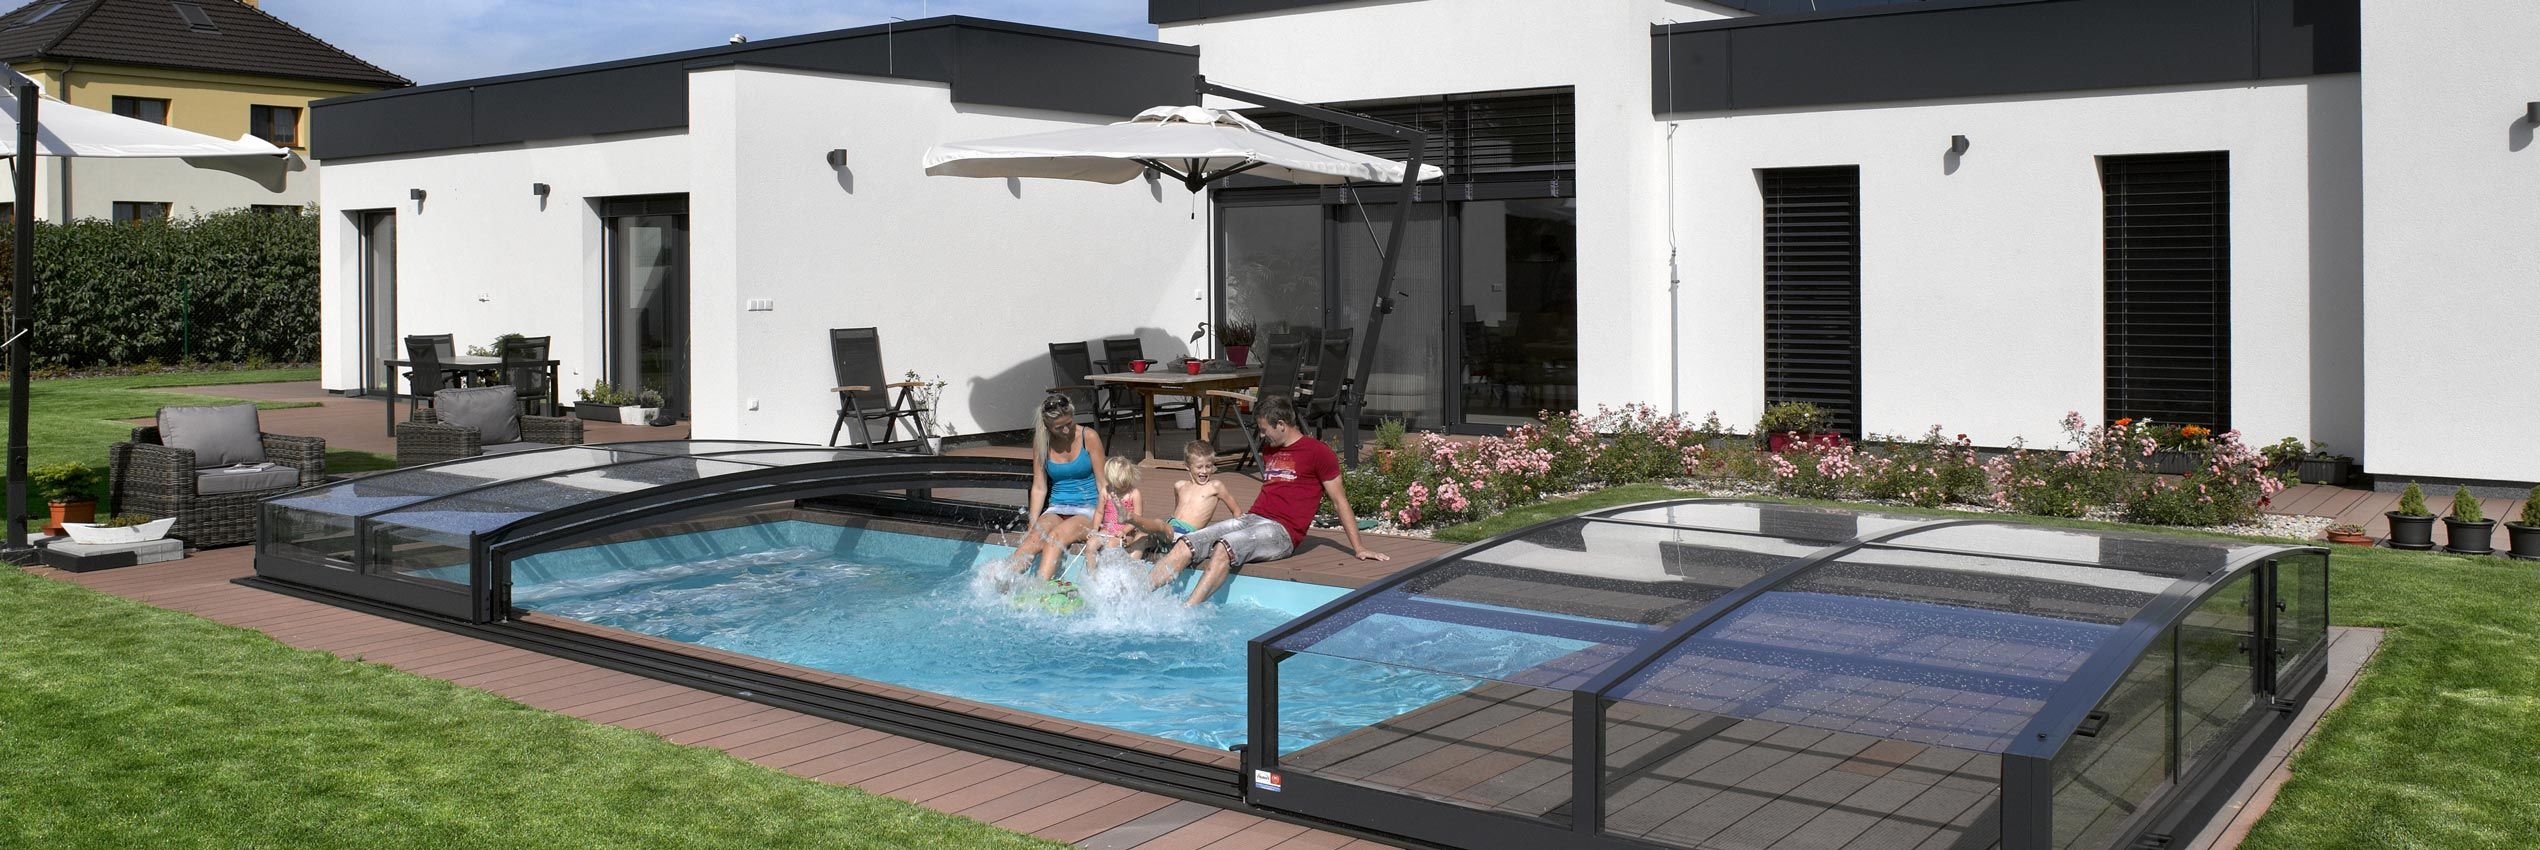 Retractable swimming pool enclosure viva sunrooms Retractable swimming pool enclosures